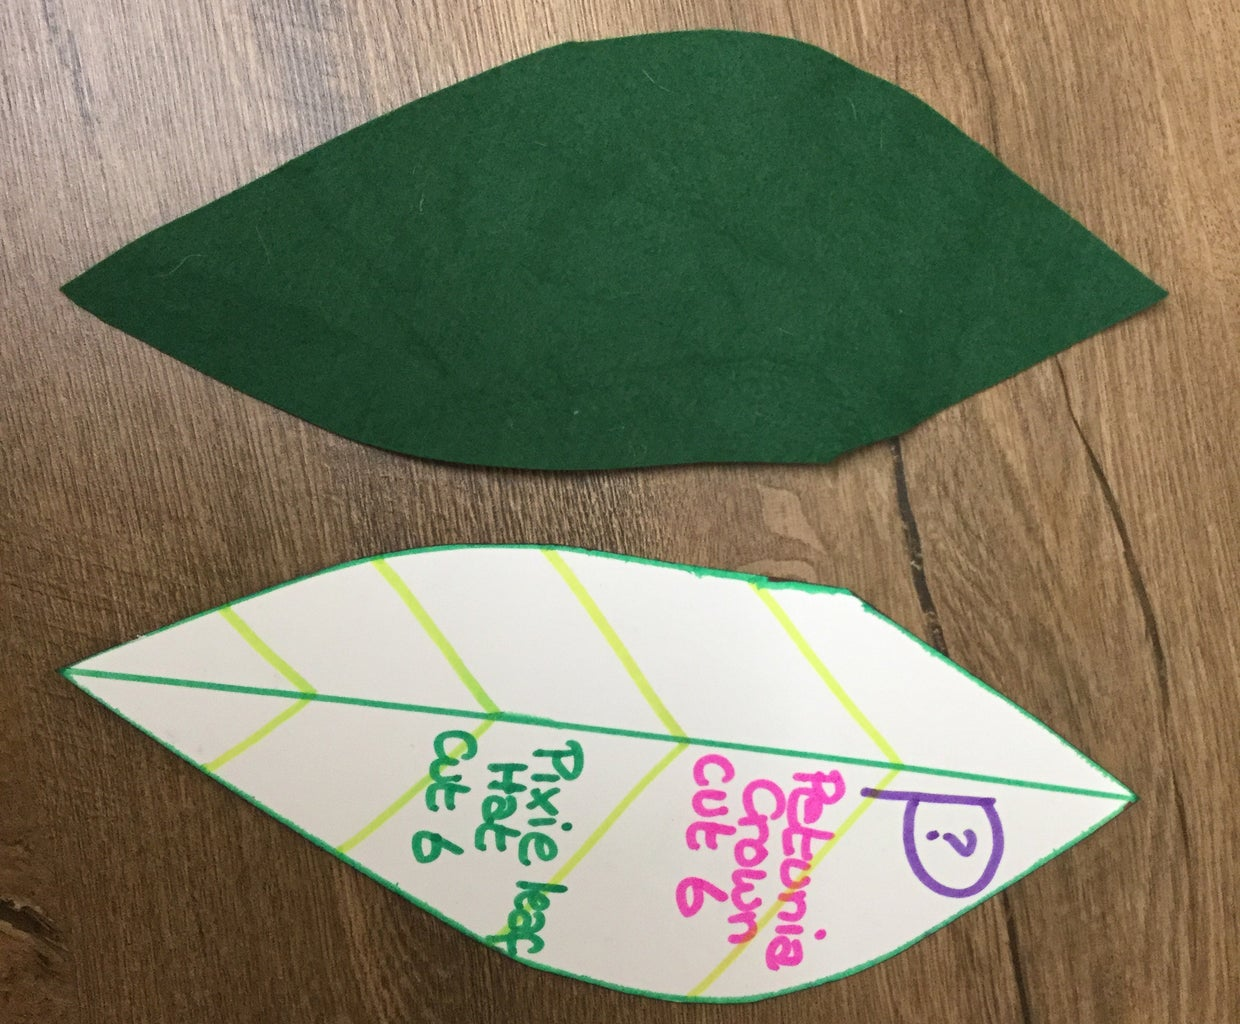 Making the Sepals (leaves)